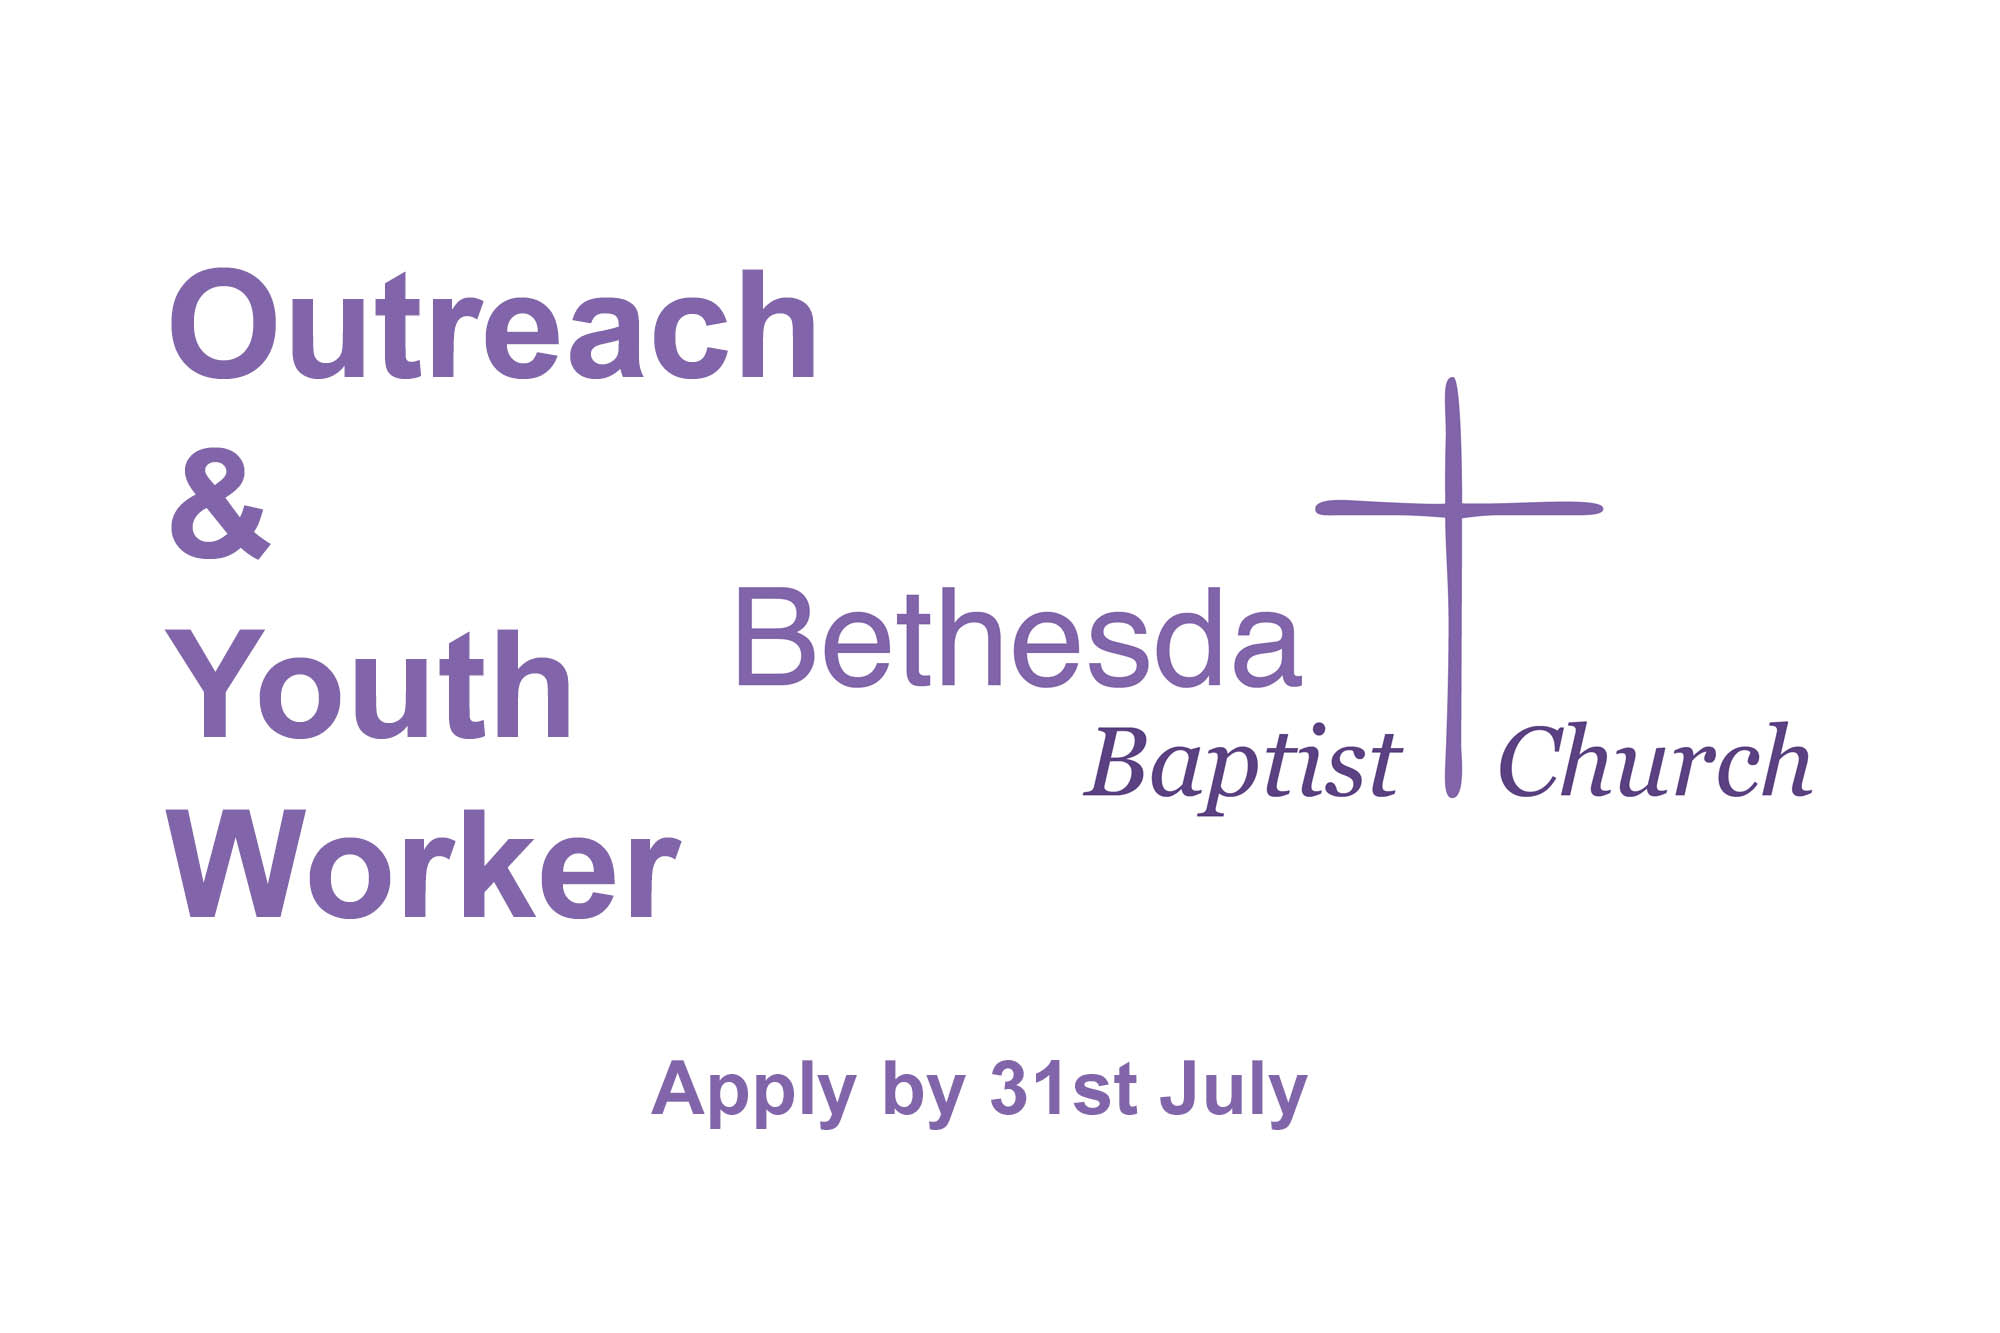 Outreach Youth Worker Applications